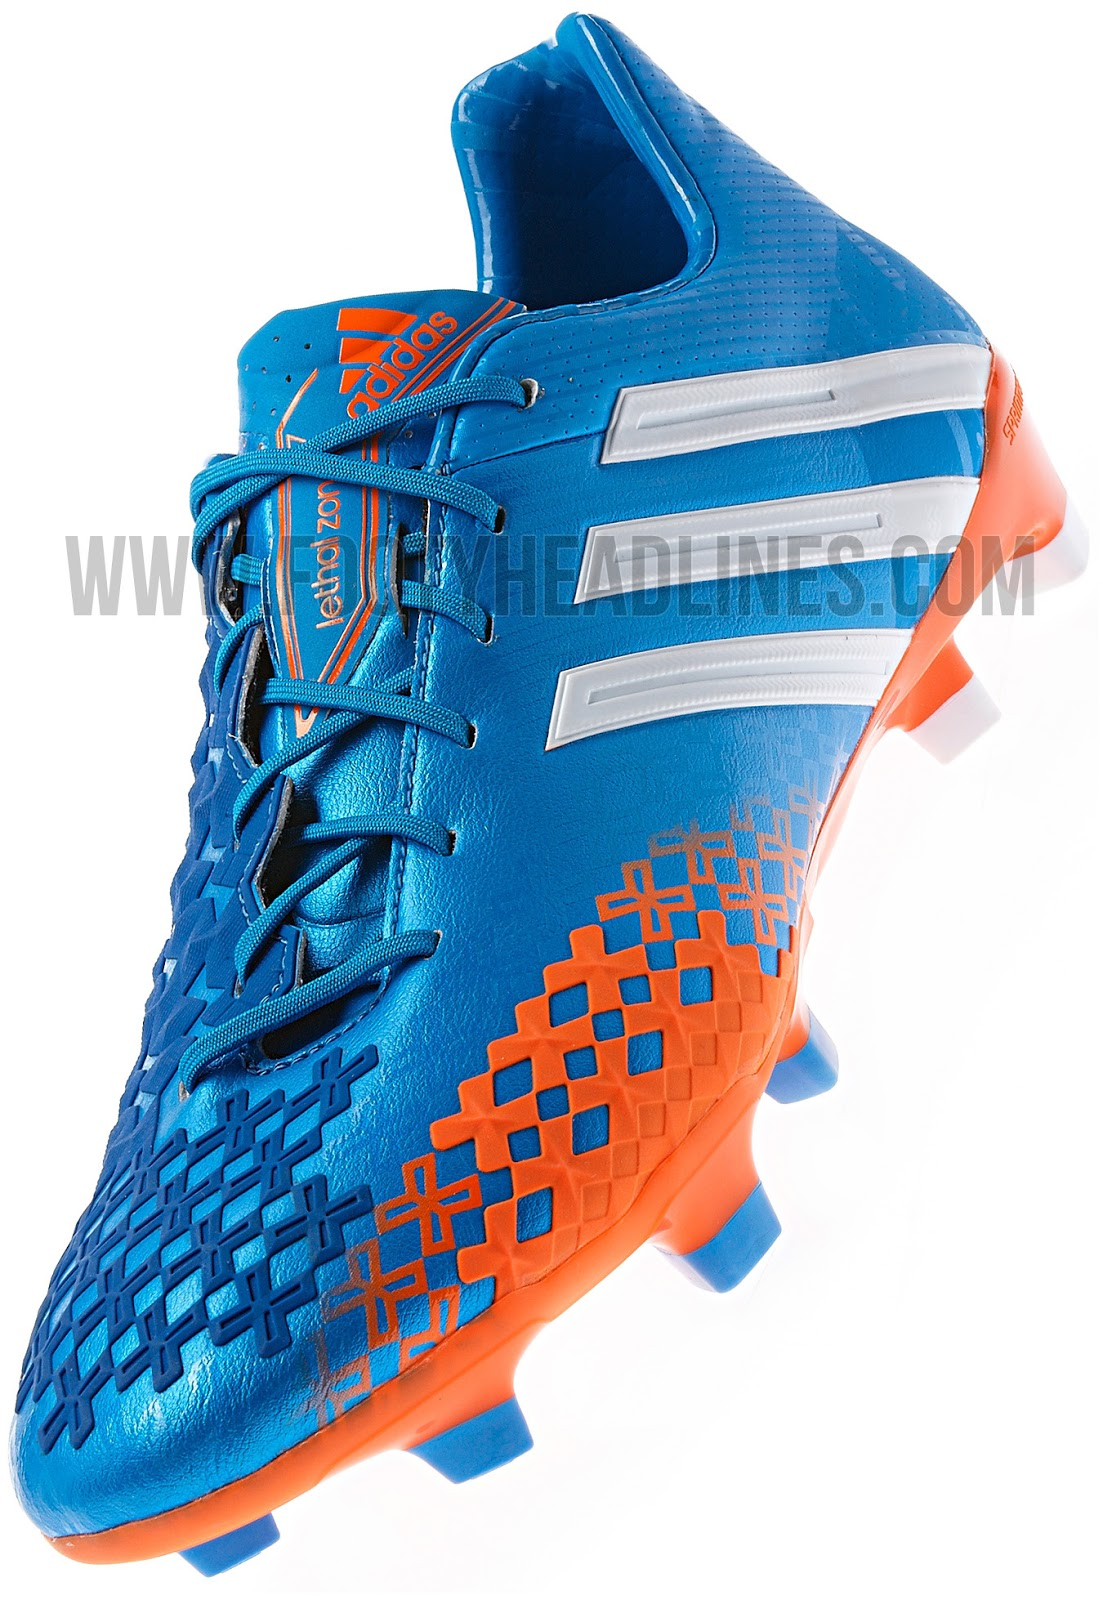 buy popular 1c3b1 5baac where to buy adidas predator 13 ddab8 887c7